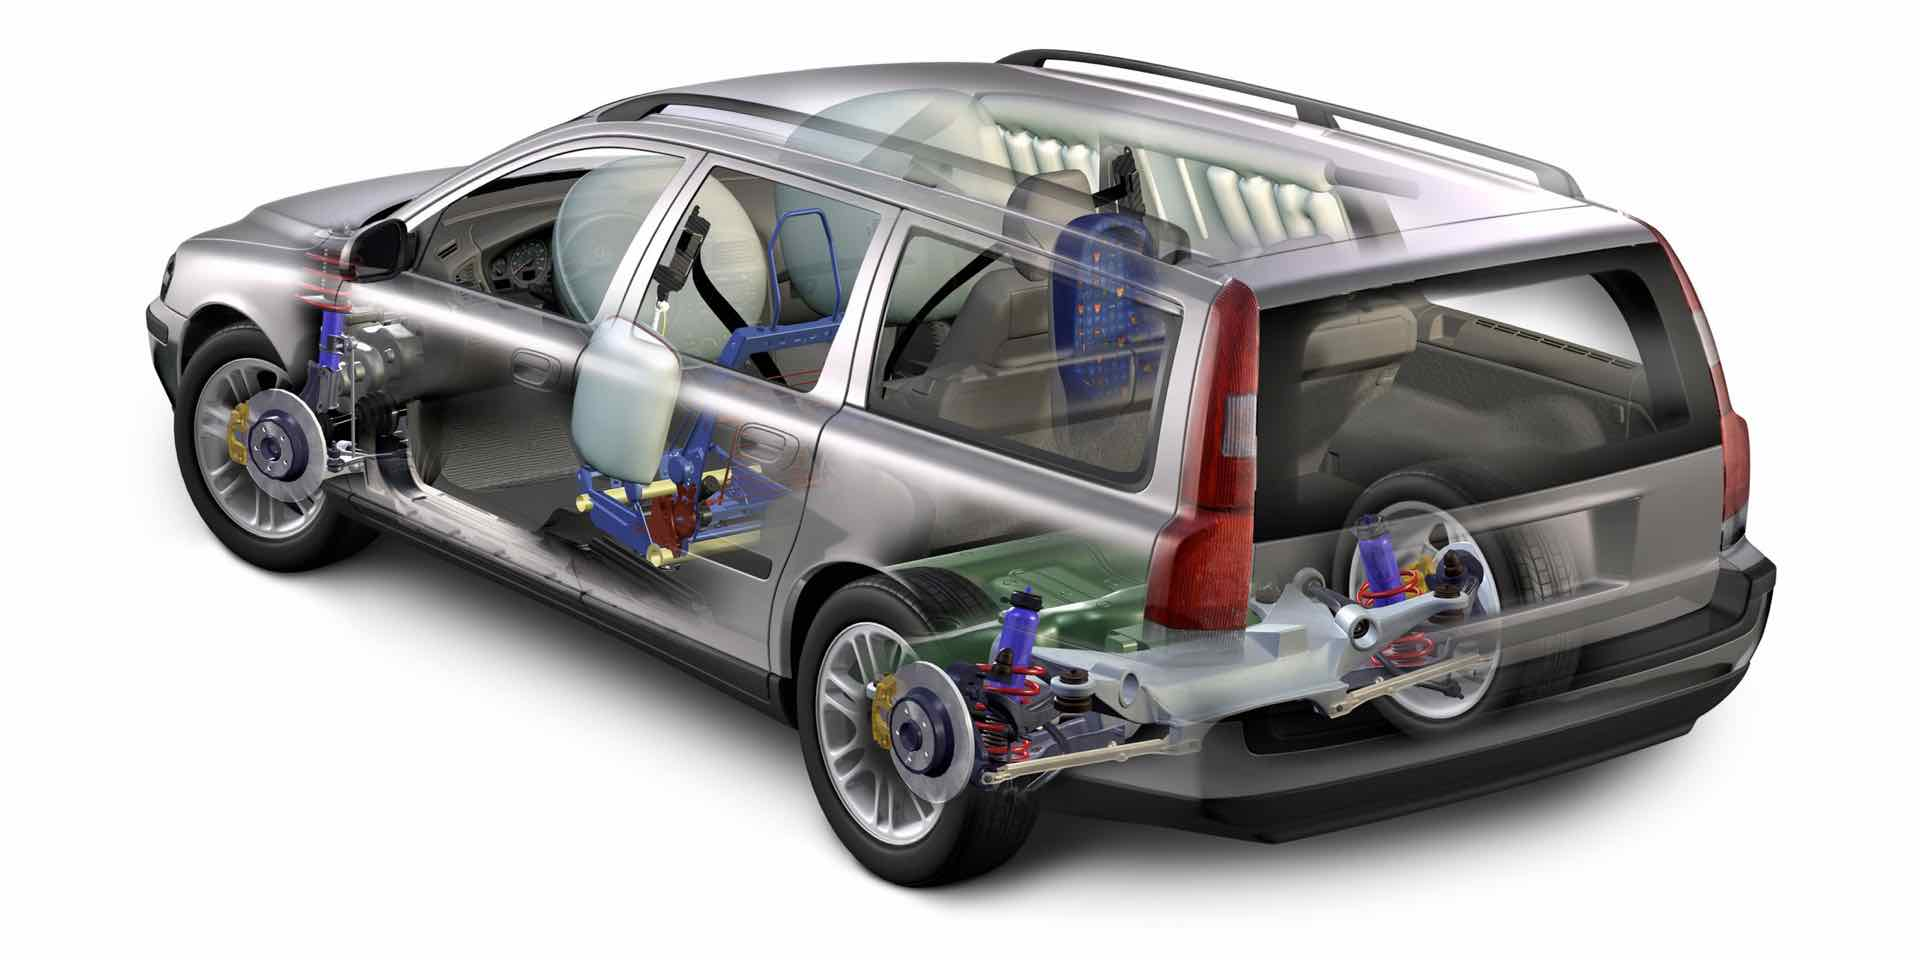 Volvo V70 - Years, Body Styles, Features, Options and